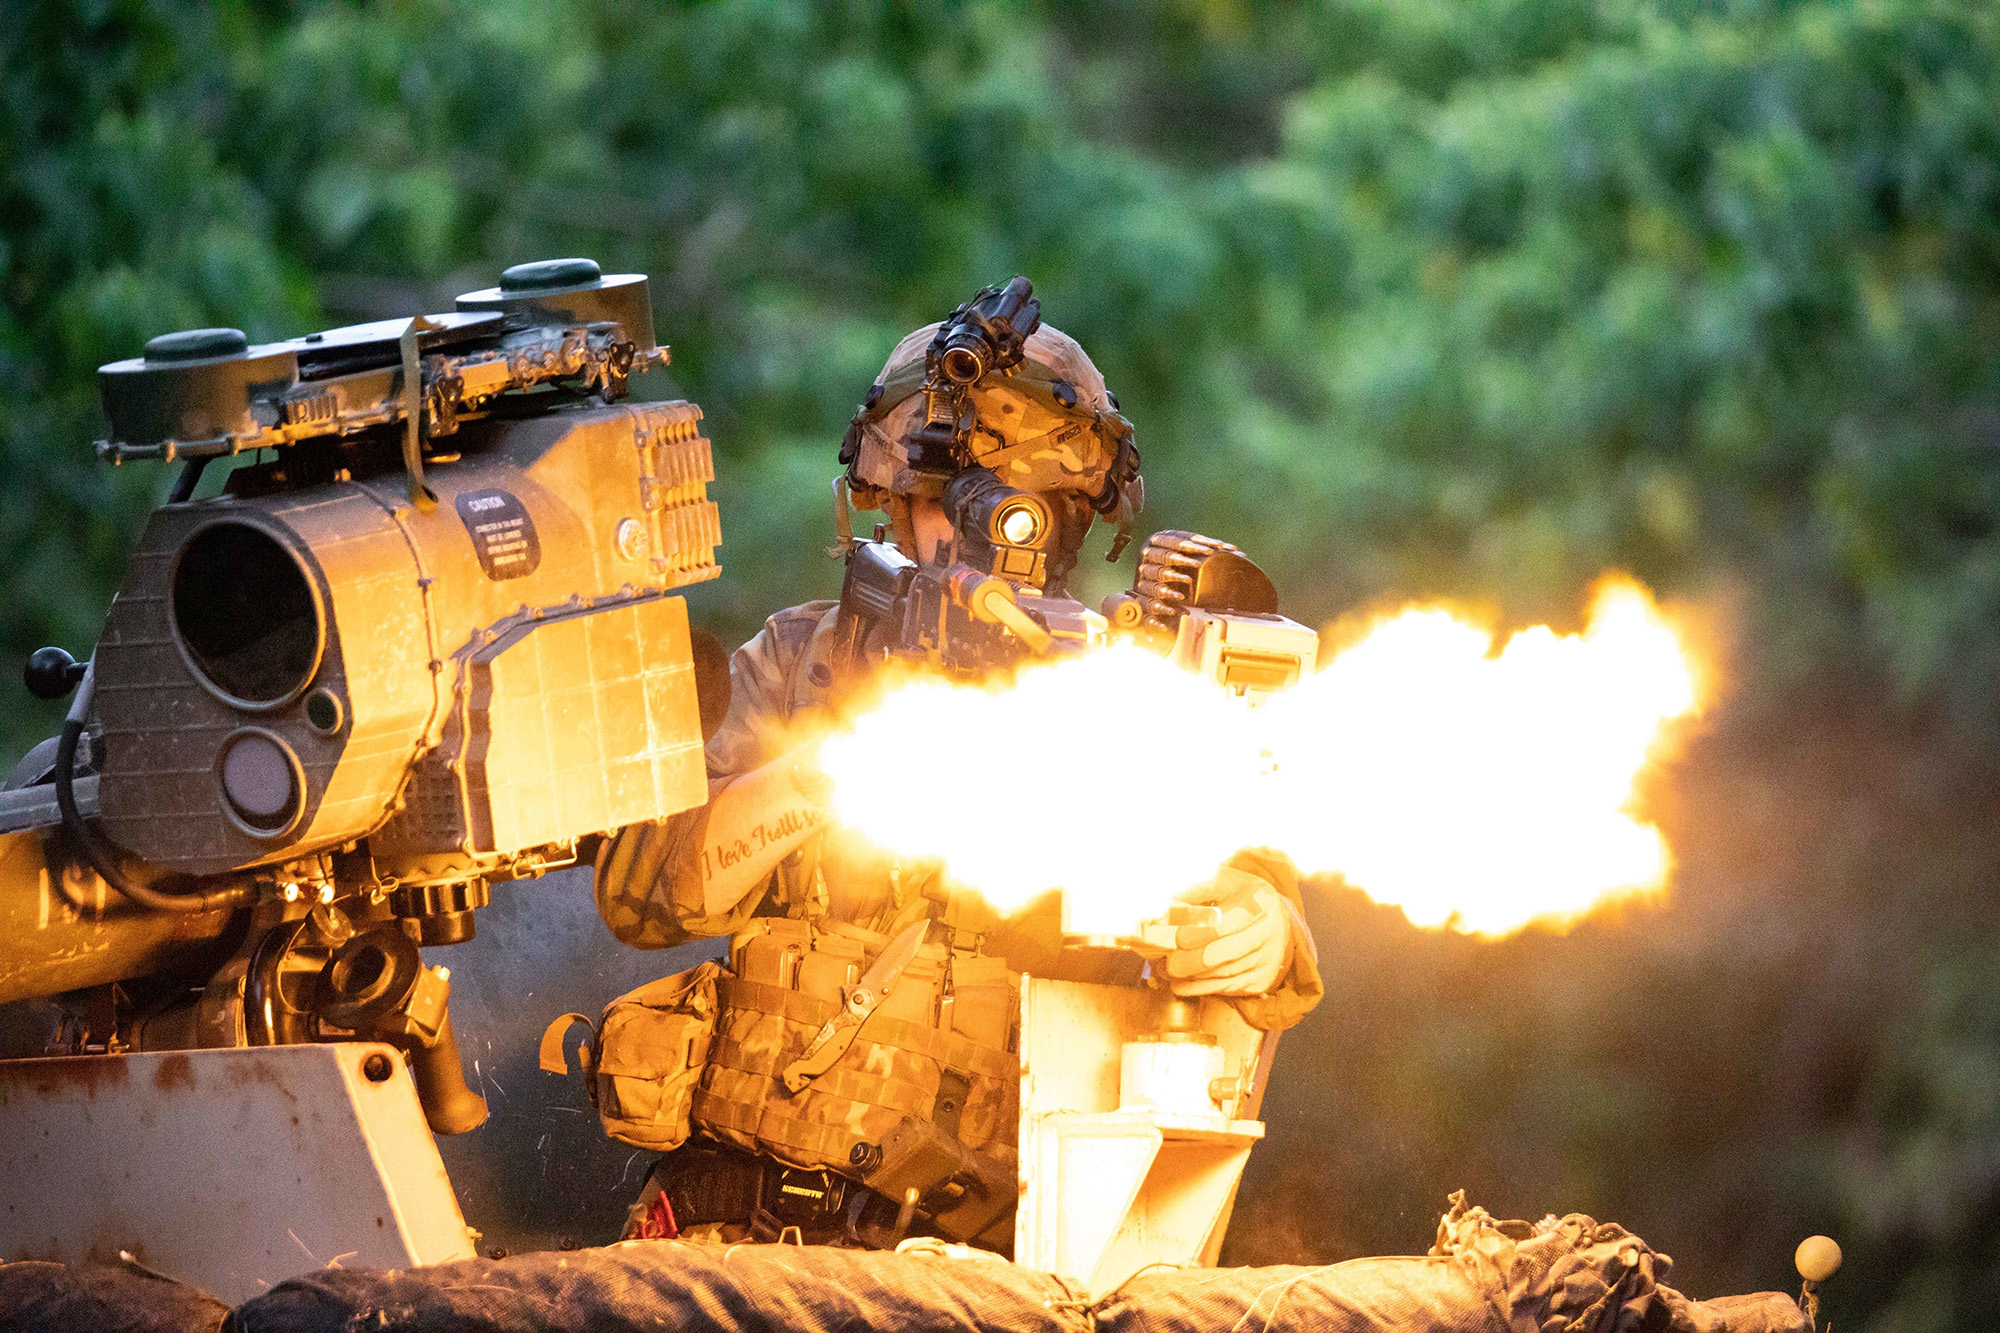 Soldiers assigned to the 3rd Infantry Brigade Combat Team, 25th Infantry Division continue to support 2nd Infantry Brigade Combat Team and the Royal Thai Army (RTA) as the Opposing Force (OPFOR) during Exercise Lightning Forge 2020 at the Kahuku Training Area, Hawaii on July 15, 2020. (1st Lt. Angelo Mejia/Army)